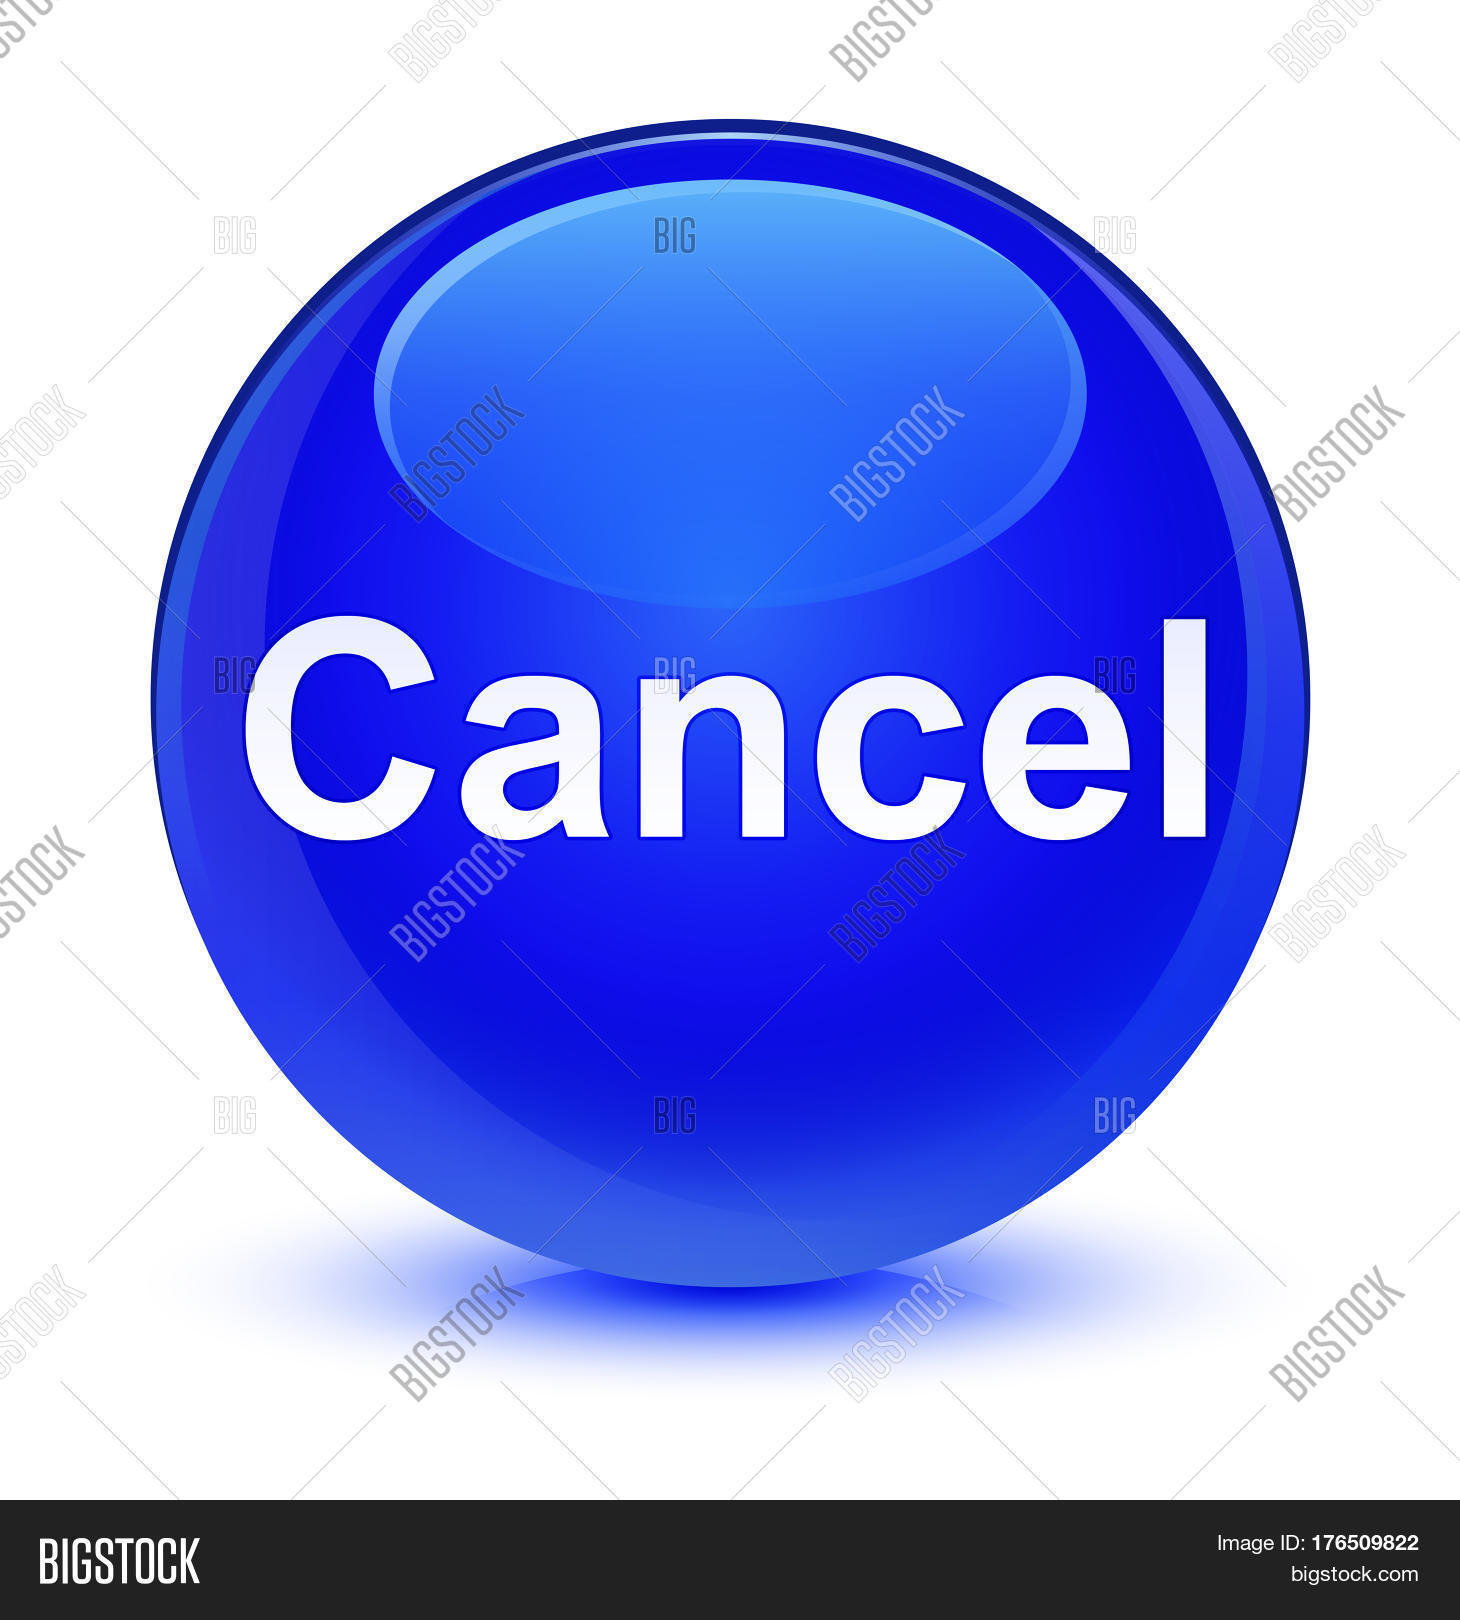 Cancel Glassy Blue Image & Photo (Free Trial) | Bigstock